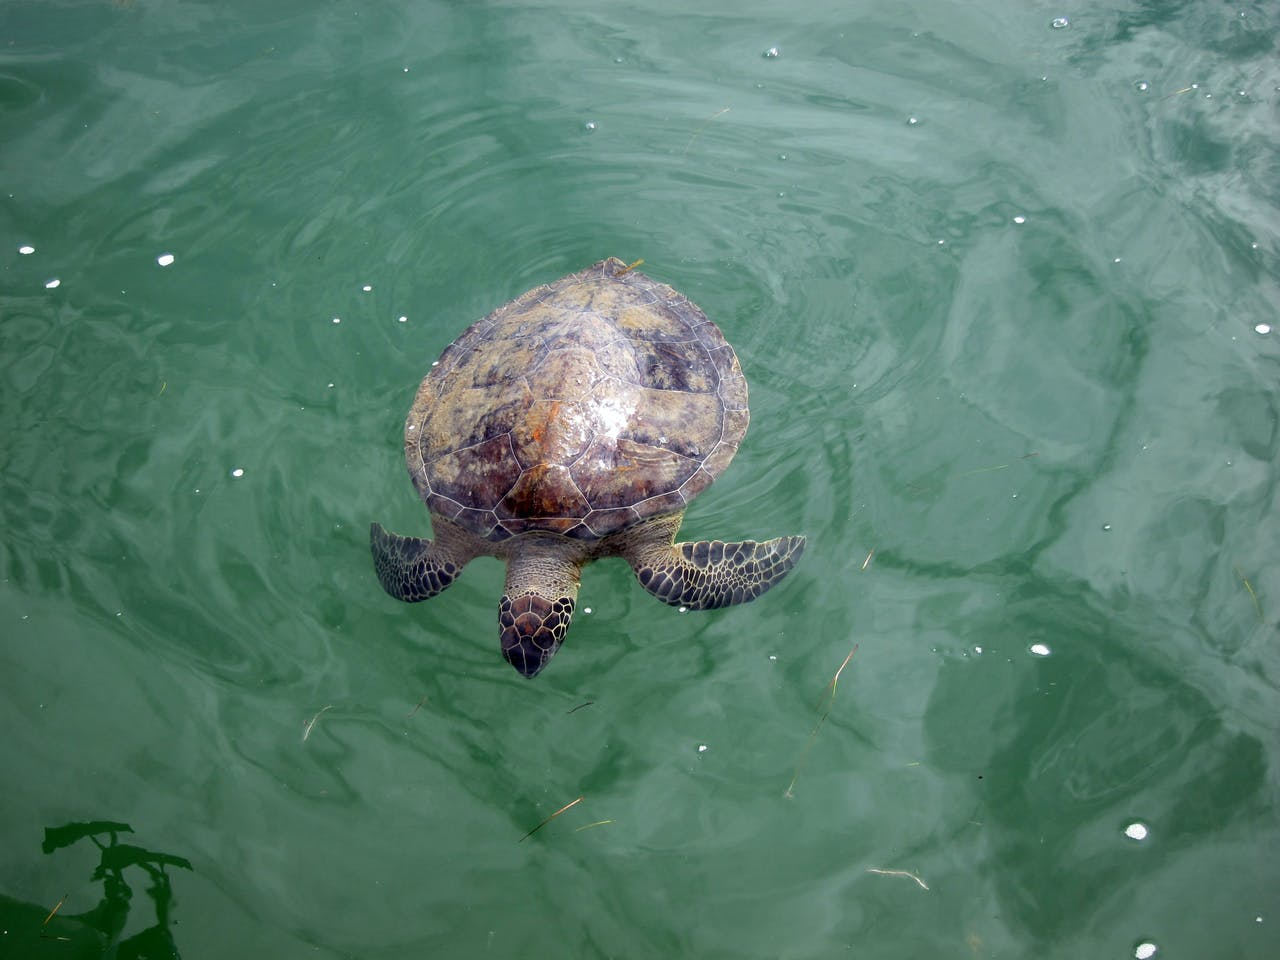 a turtle floats on shallow water